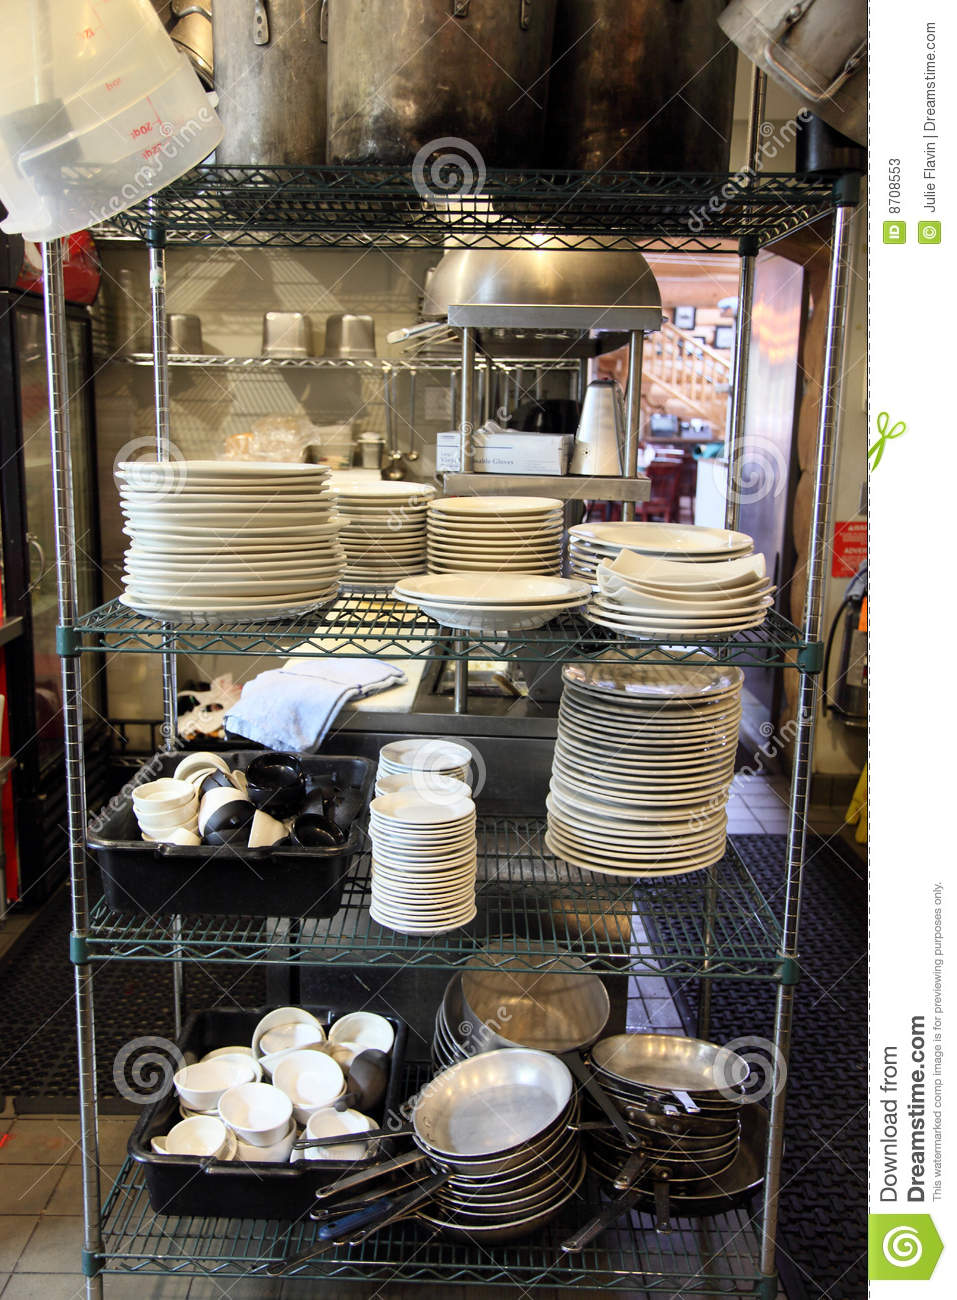 Restaurant kitchen dishwasher area stock photos image for Equipement de restaurant usage